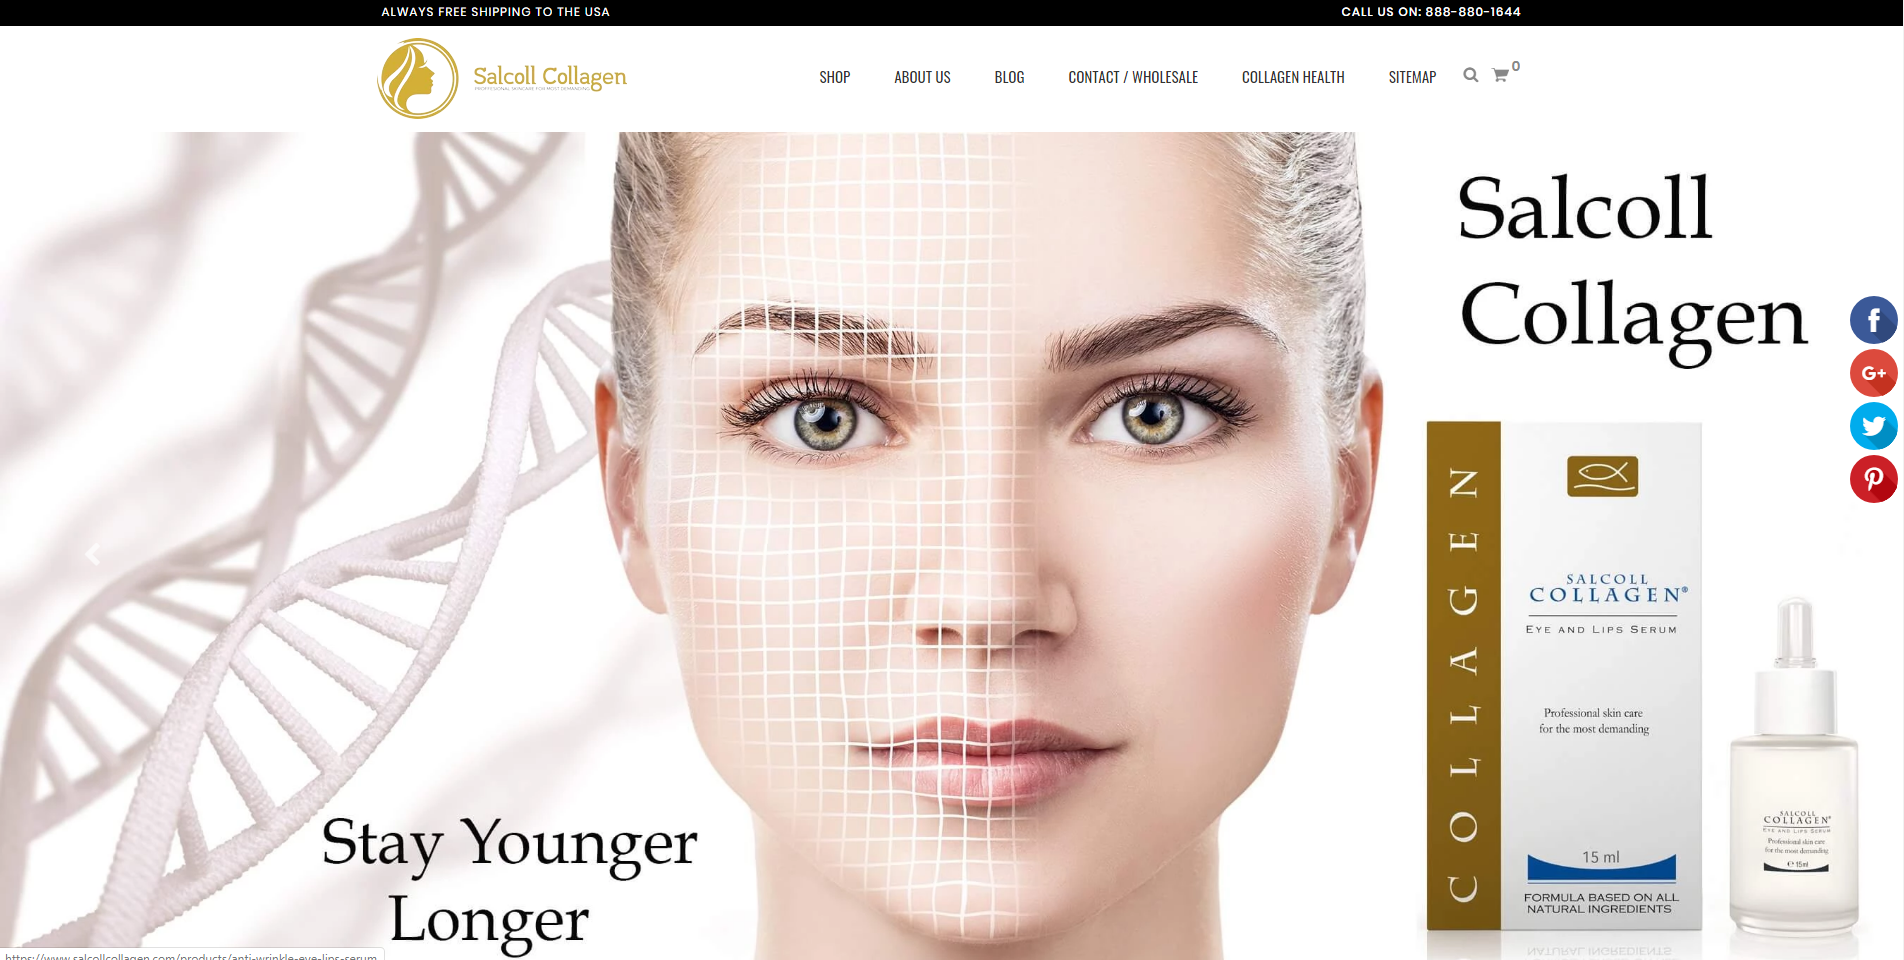 Salcoll Collagen (Shopify)